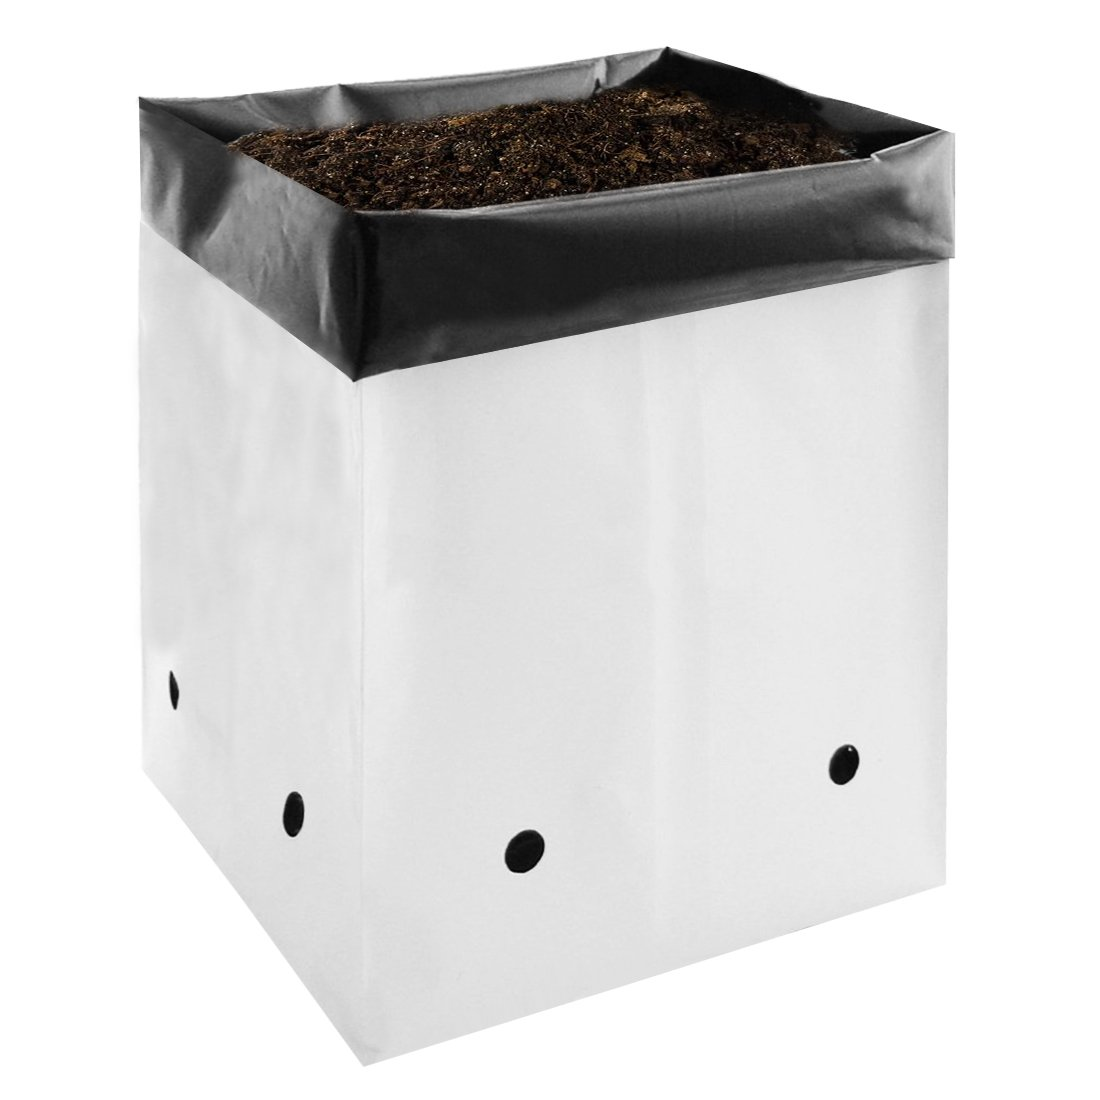 VIVOSUN 50-Pack 2 Gallon Grow Bags by VIVOSUN